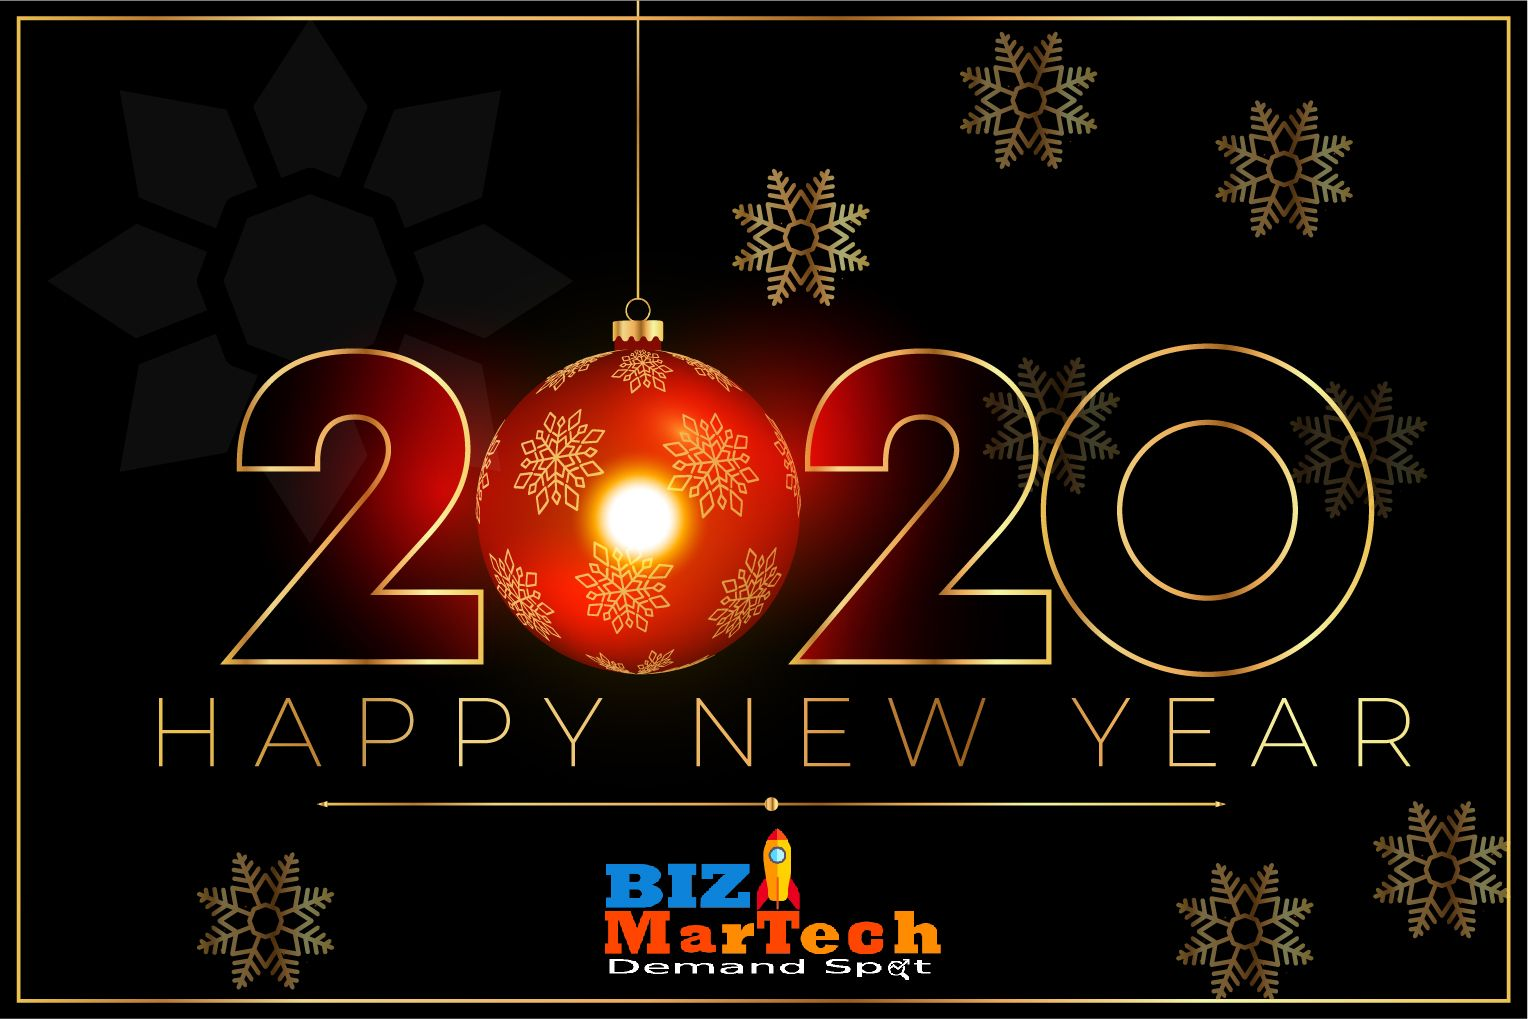 May the New Year bring to you warmth of love, and a light